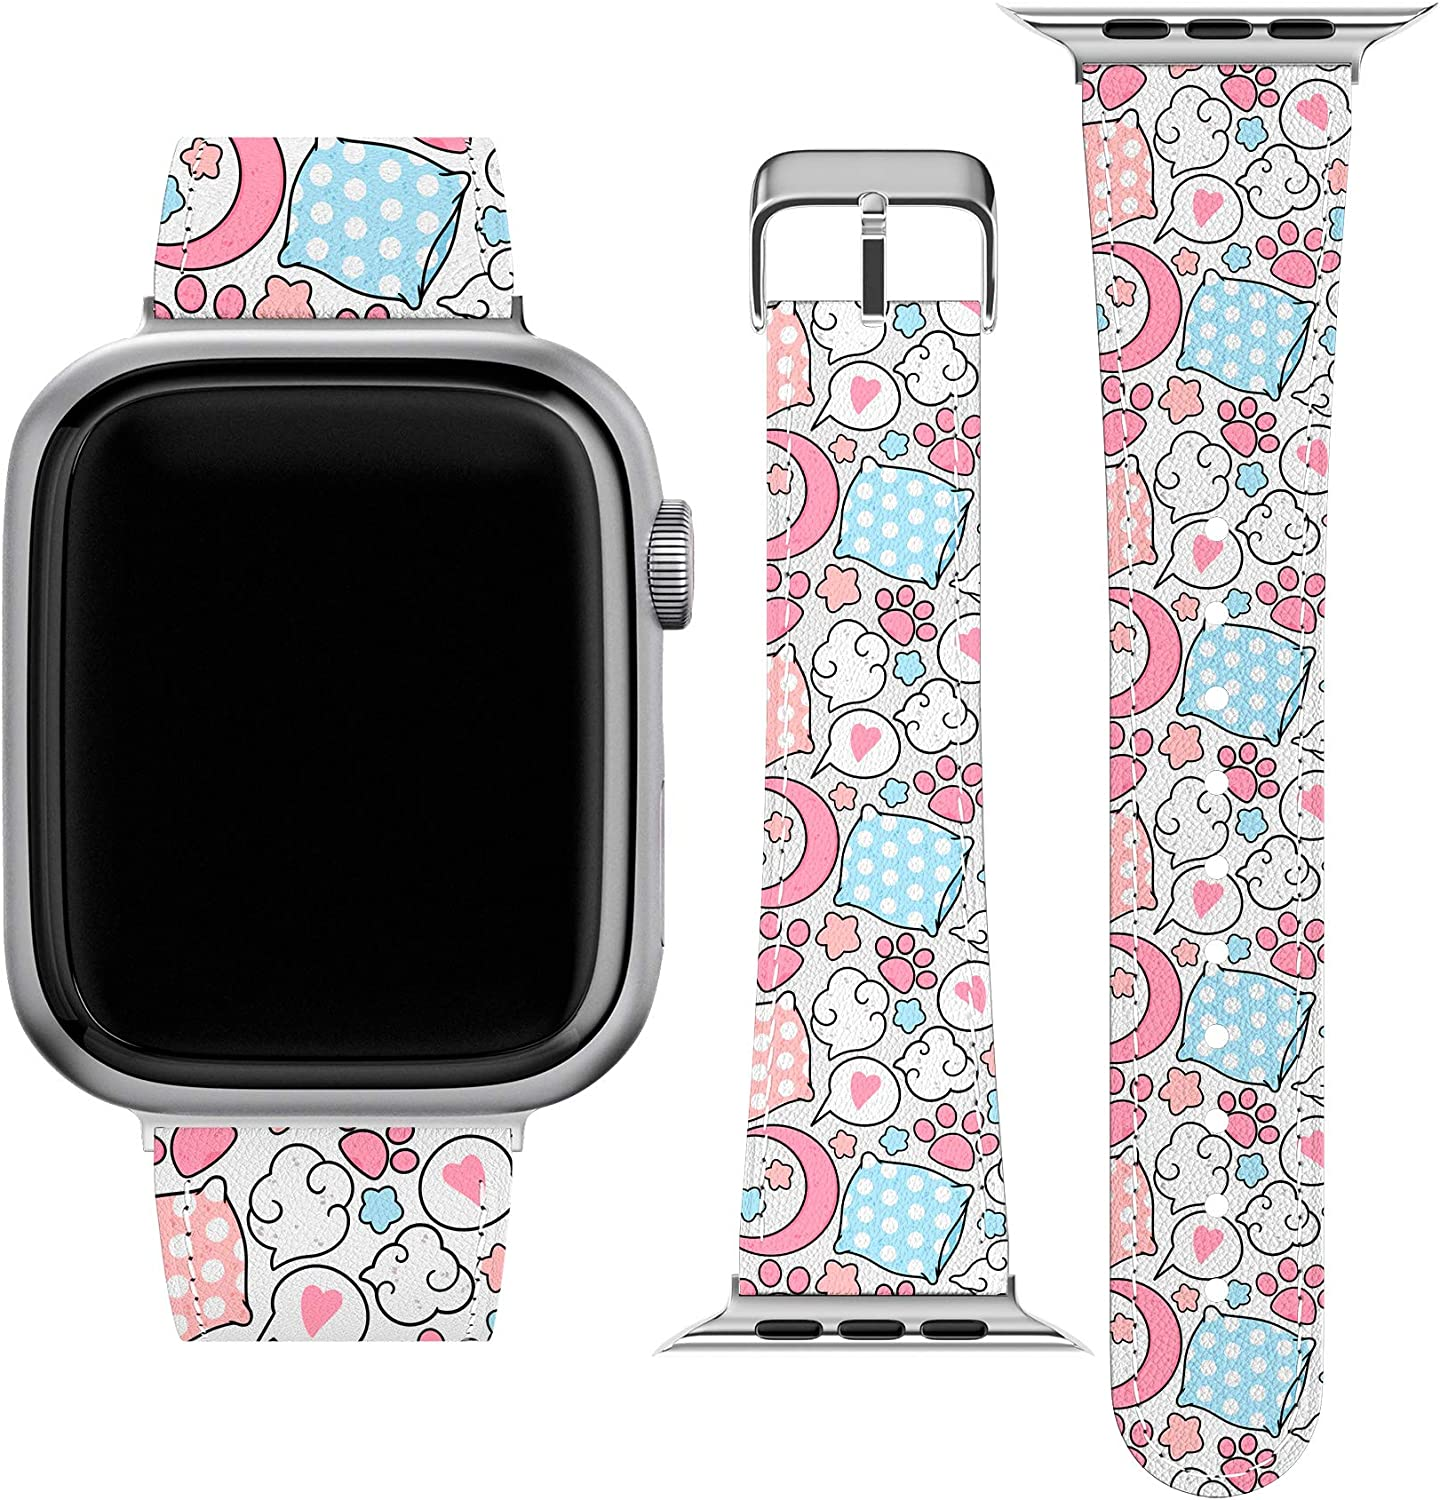 Lex Altern Band Compatible with Apple Watch Series 6 SE 5 4 3 2 1 38mm 40mm 42mm 44mm Moon Replacement Strap for iWatch Girly Thin Wristband Pink Paws Cute Print Kawaii Durable Polka Dot Stylish wh543